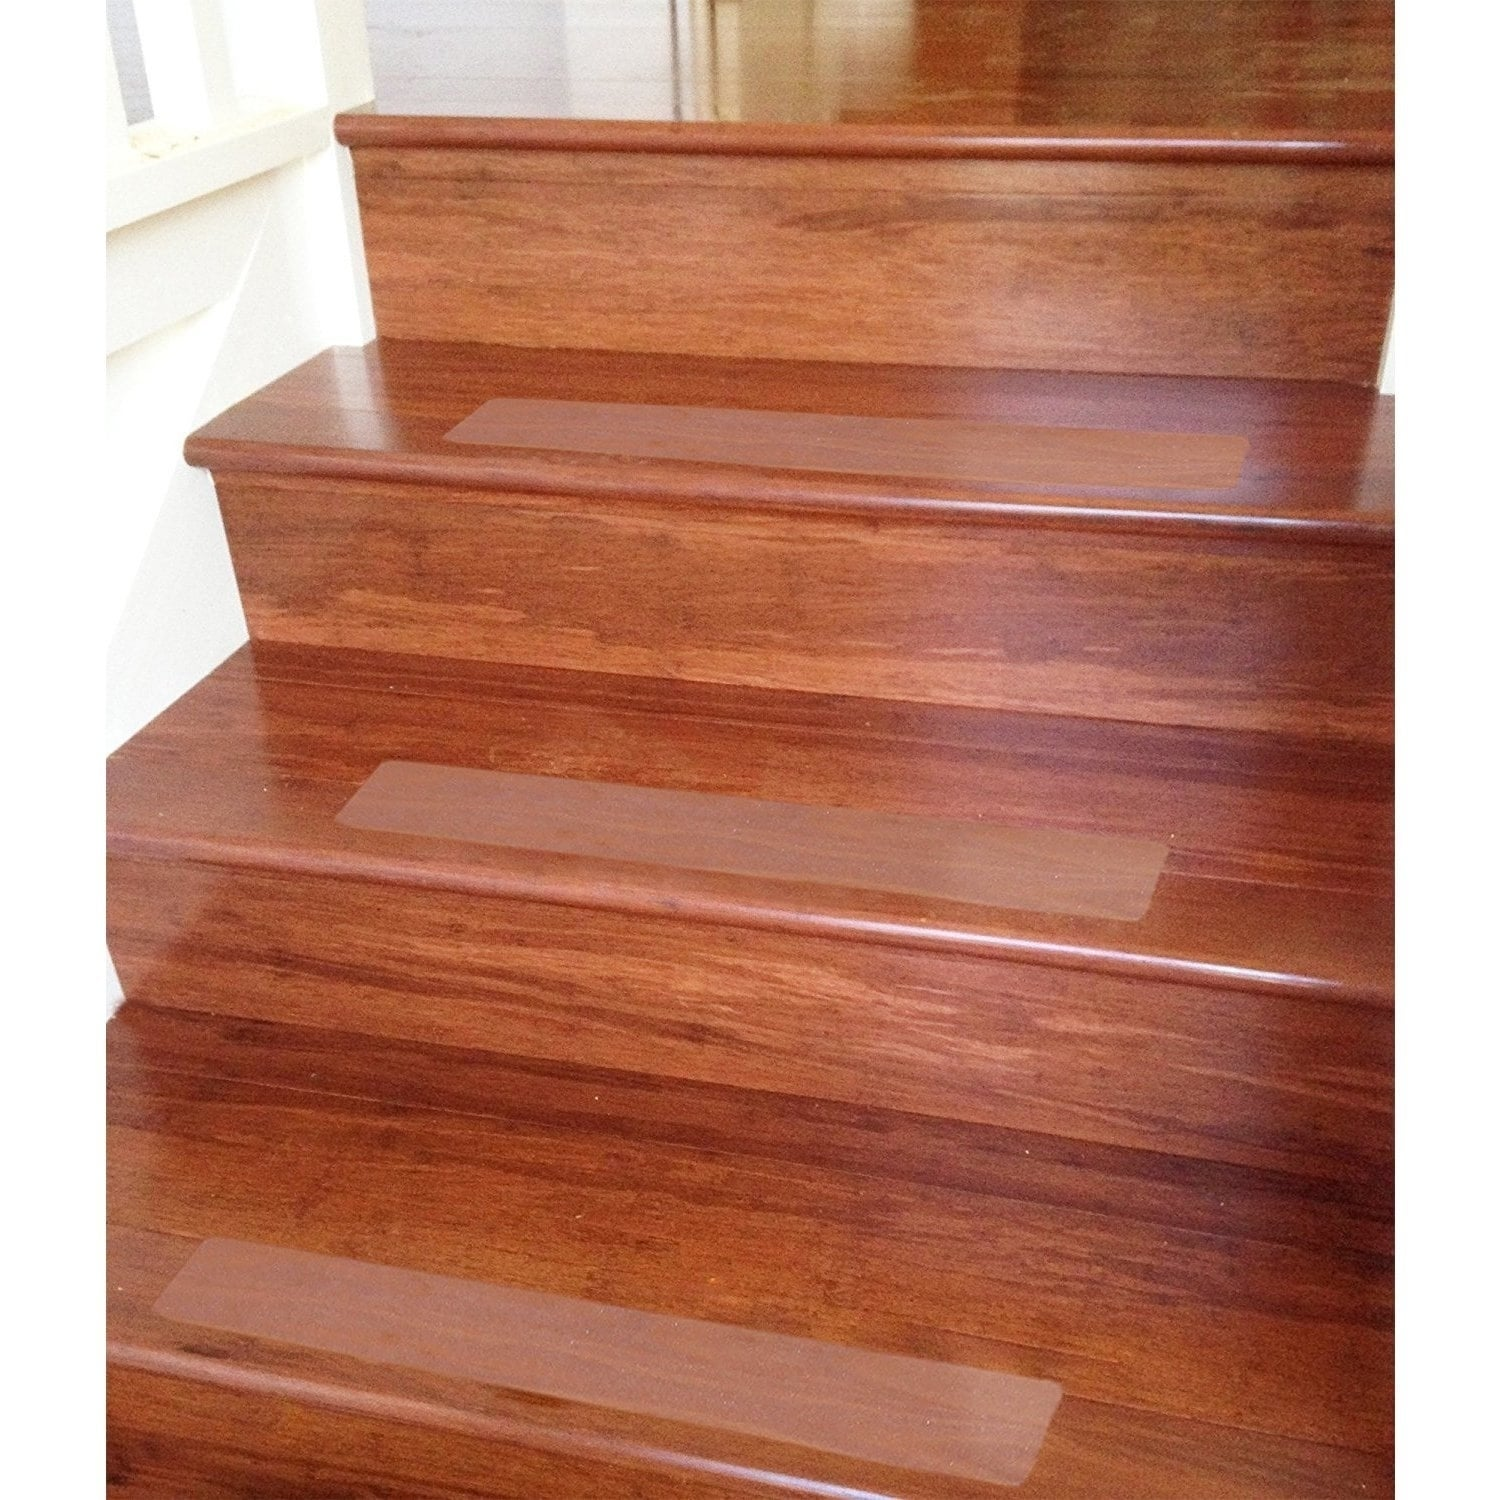 Pet Friendly Non Slip Stair Treads